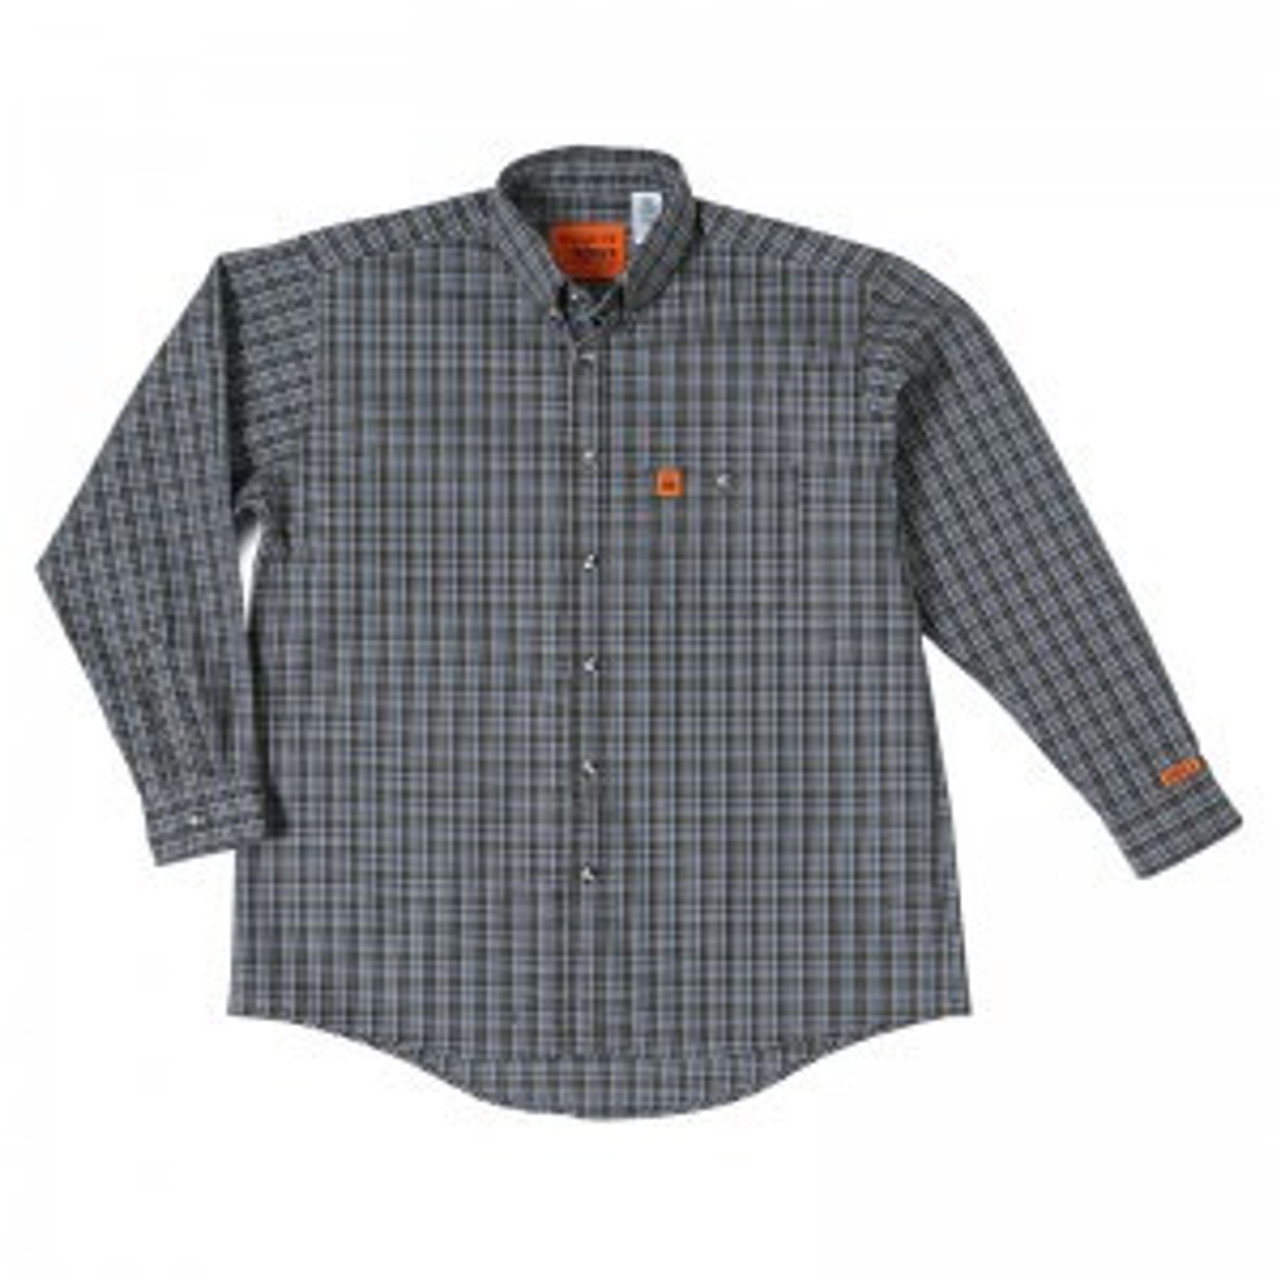 a88635a999f WRANGLER RIGGS WORKWEAR FLAME RESISTANT FR SHIRT CHOCOLATE PLAID -  Shelton s Clothing   Outdoors